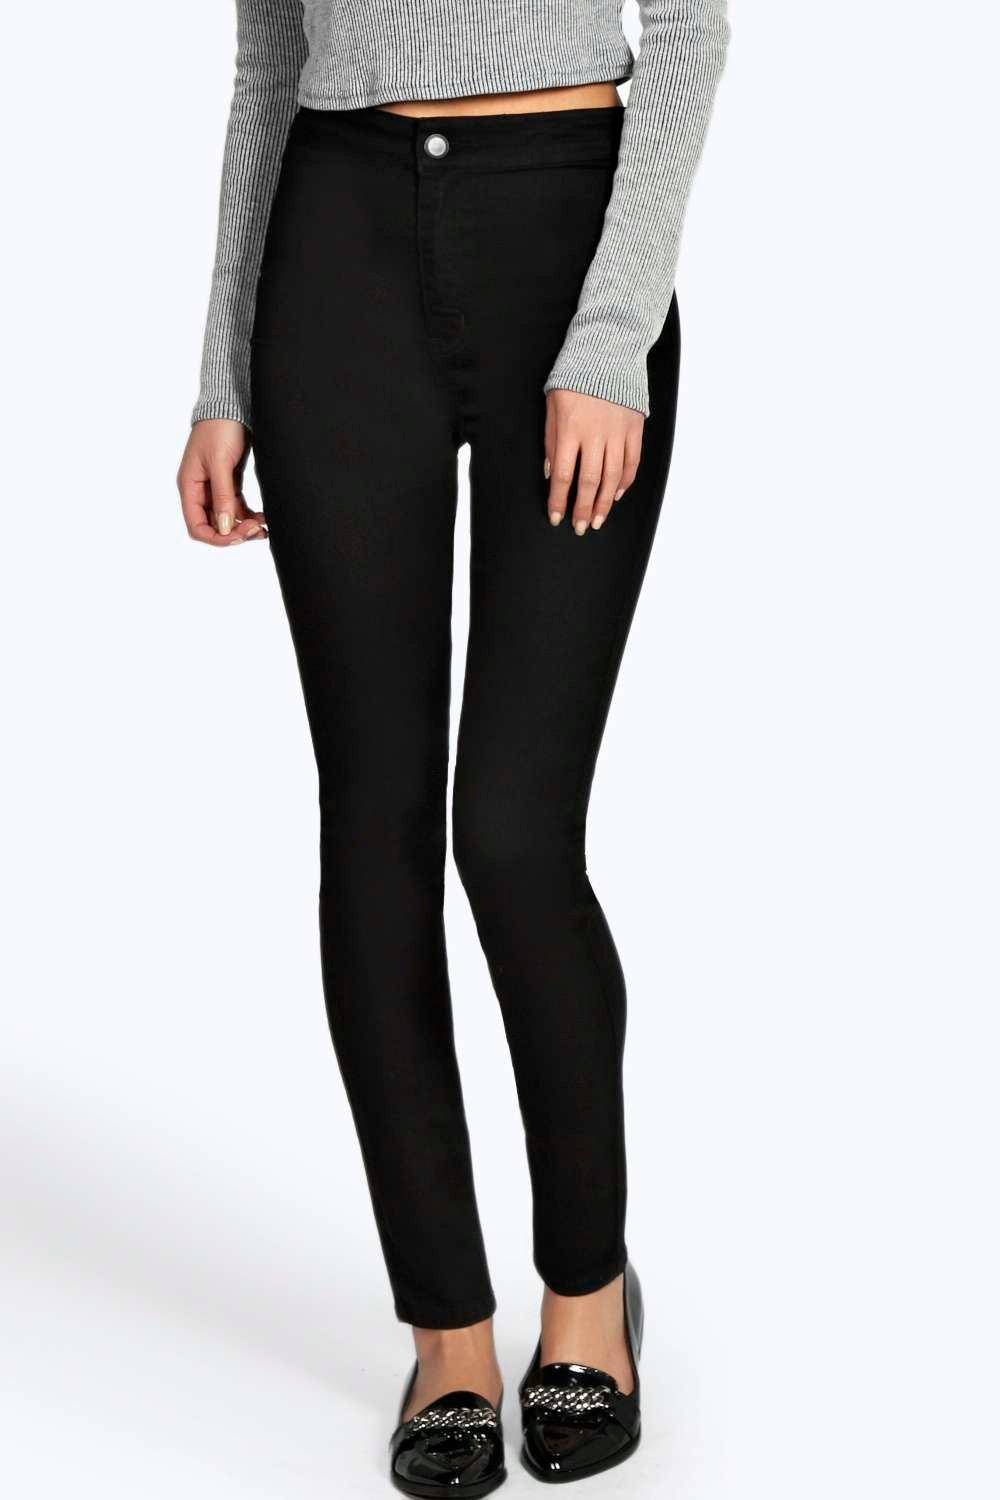 Black High Waisted Super Skinny Jeans - Xtellar Jeans